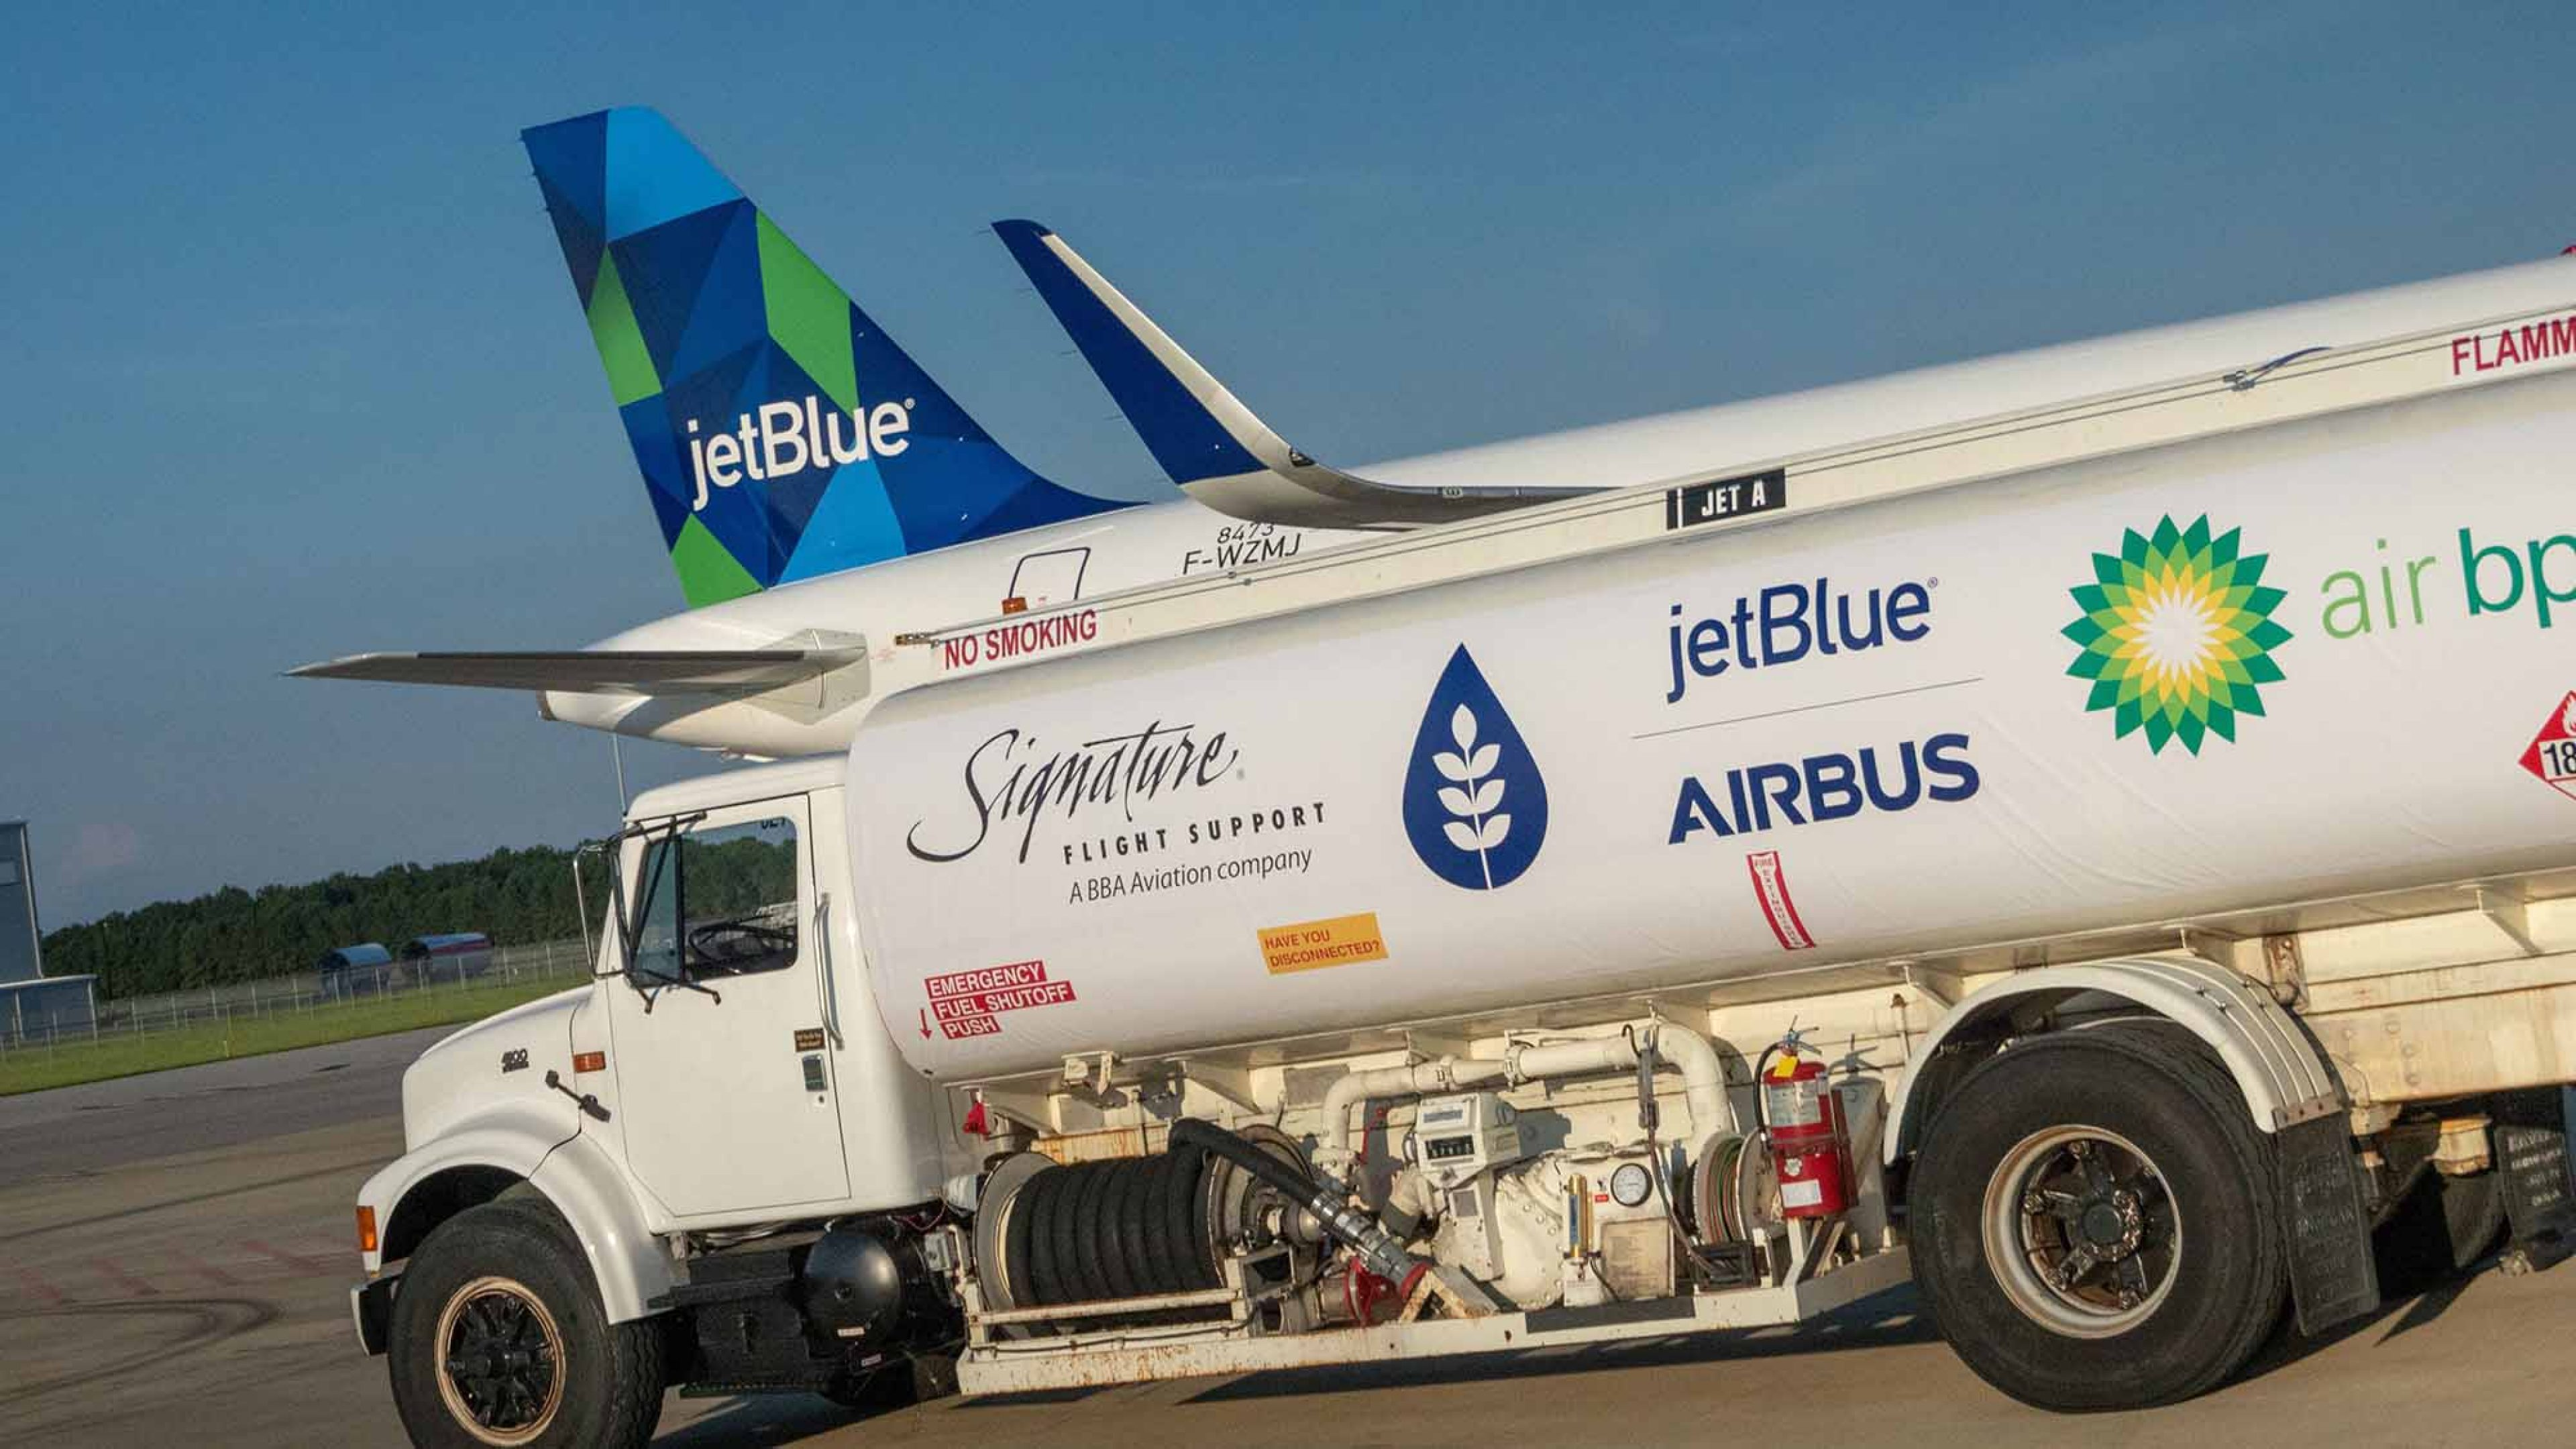 Airbus 1st US biofuel fueling and flight